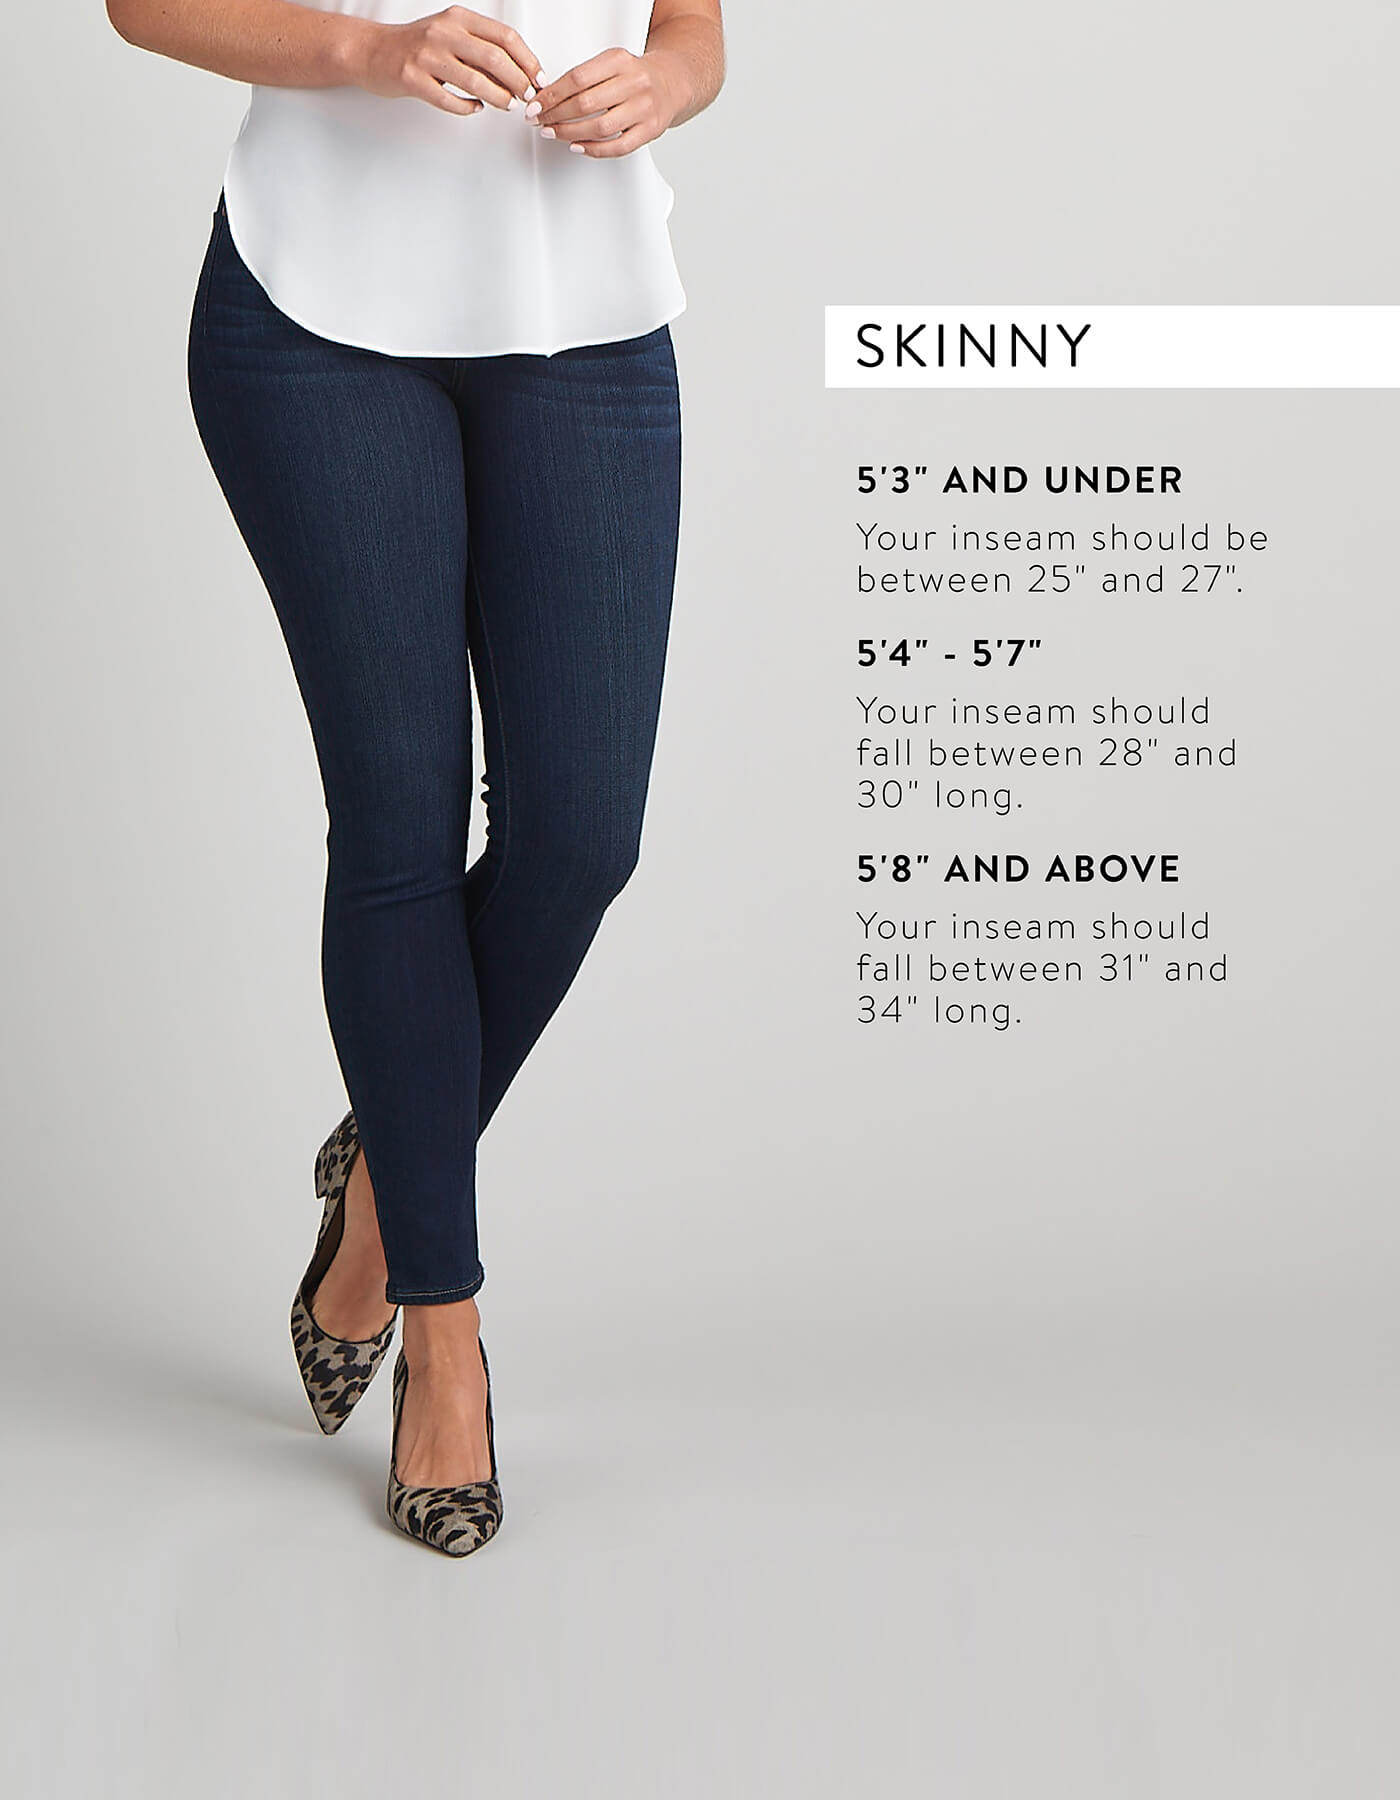 Tall Women Sizing: Understanding the Inseam